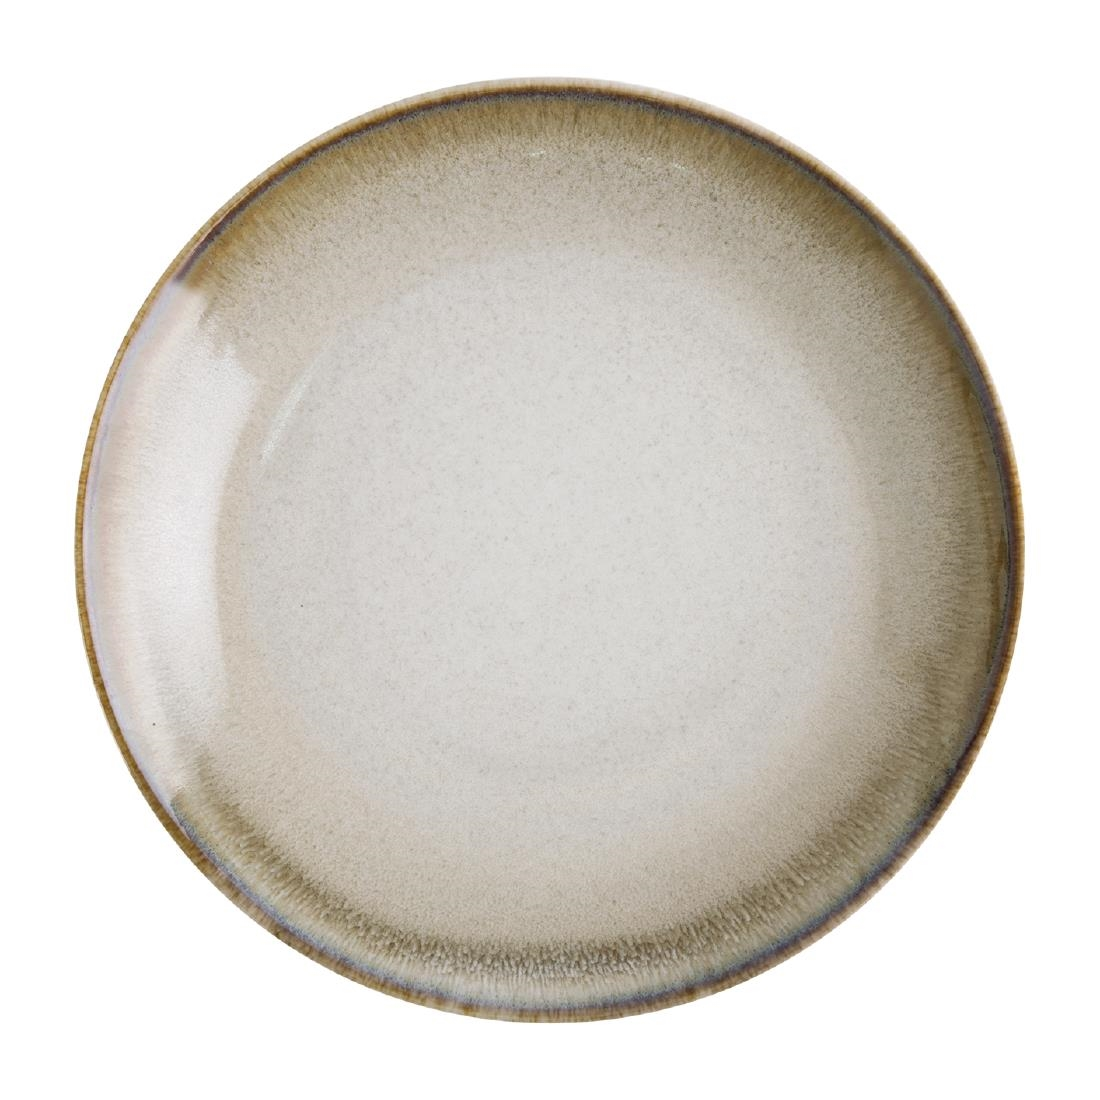 Olympia Birch Taupe Coupe Plates 270mm Pack of 6